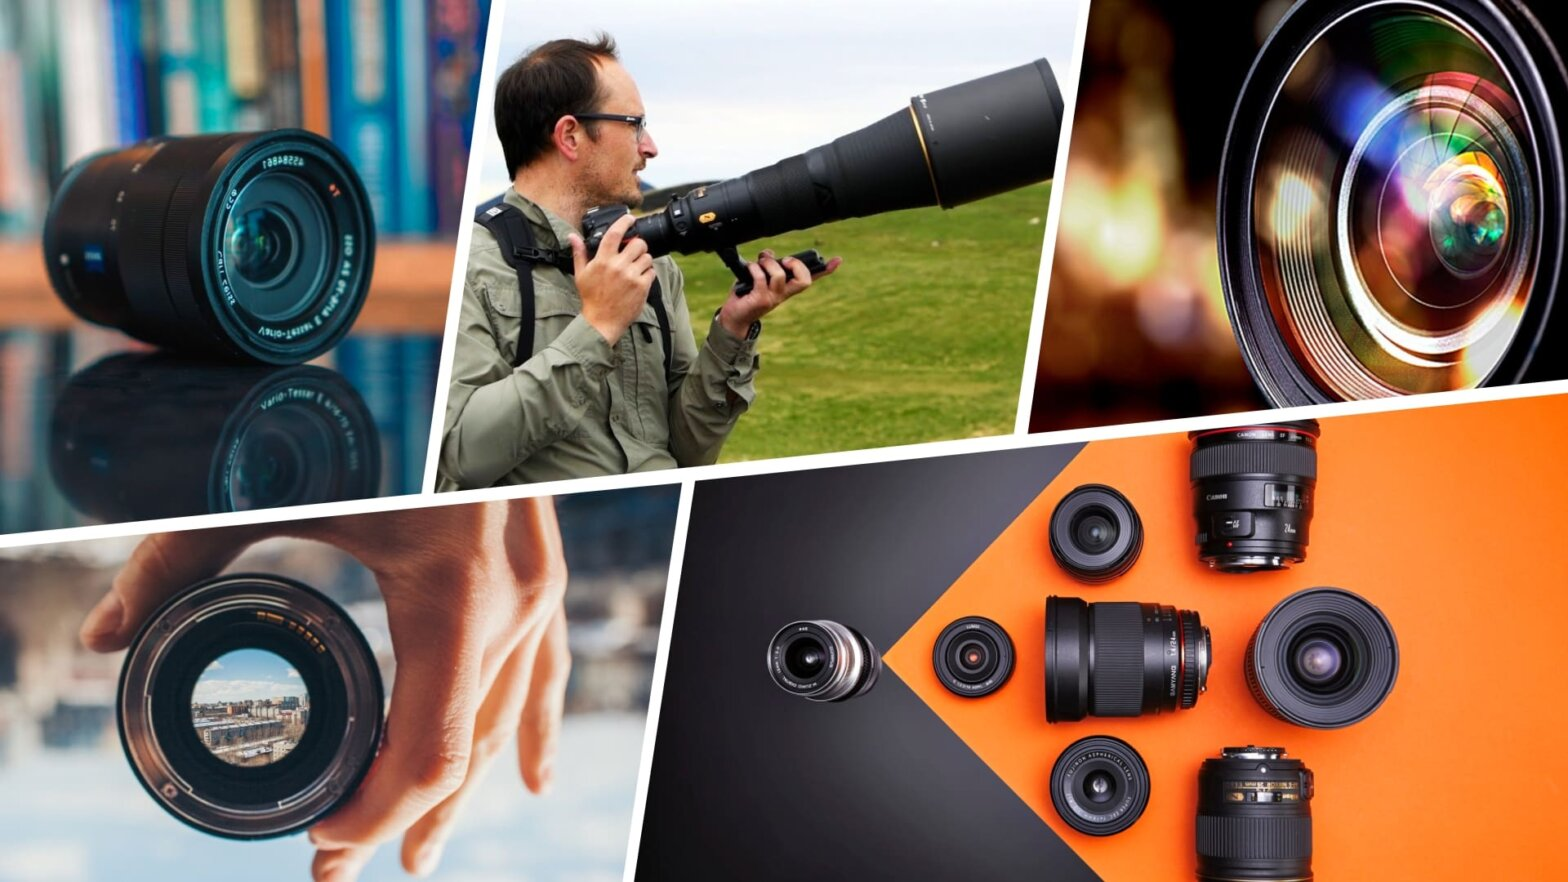 Camera Lenses Explained What-s Inside and How Do They Work - Featured